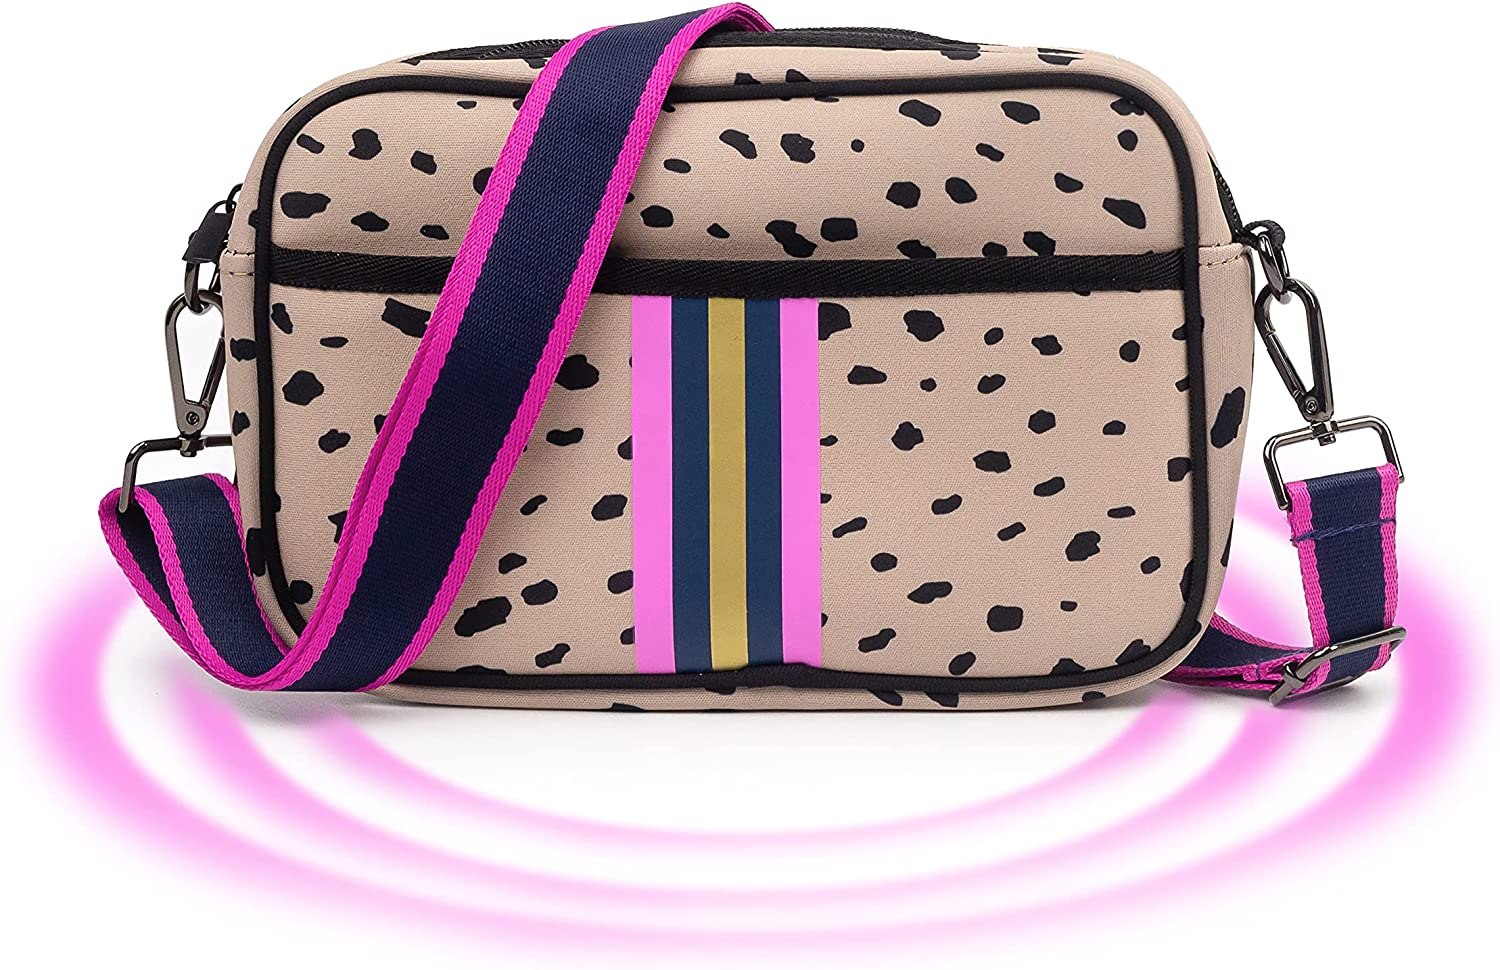 Crossbody Bags Ranking TOP1 For Women Neoprene security Phone fit Bag to Messenger